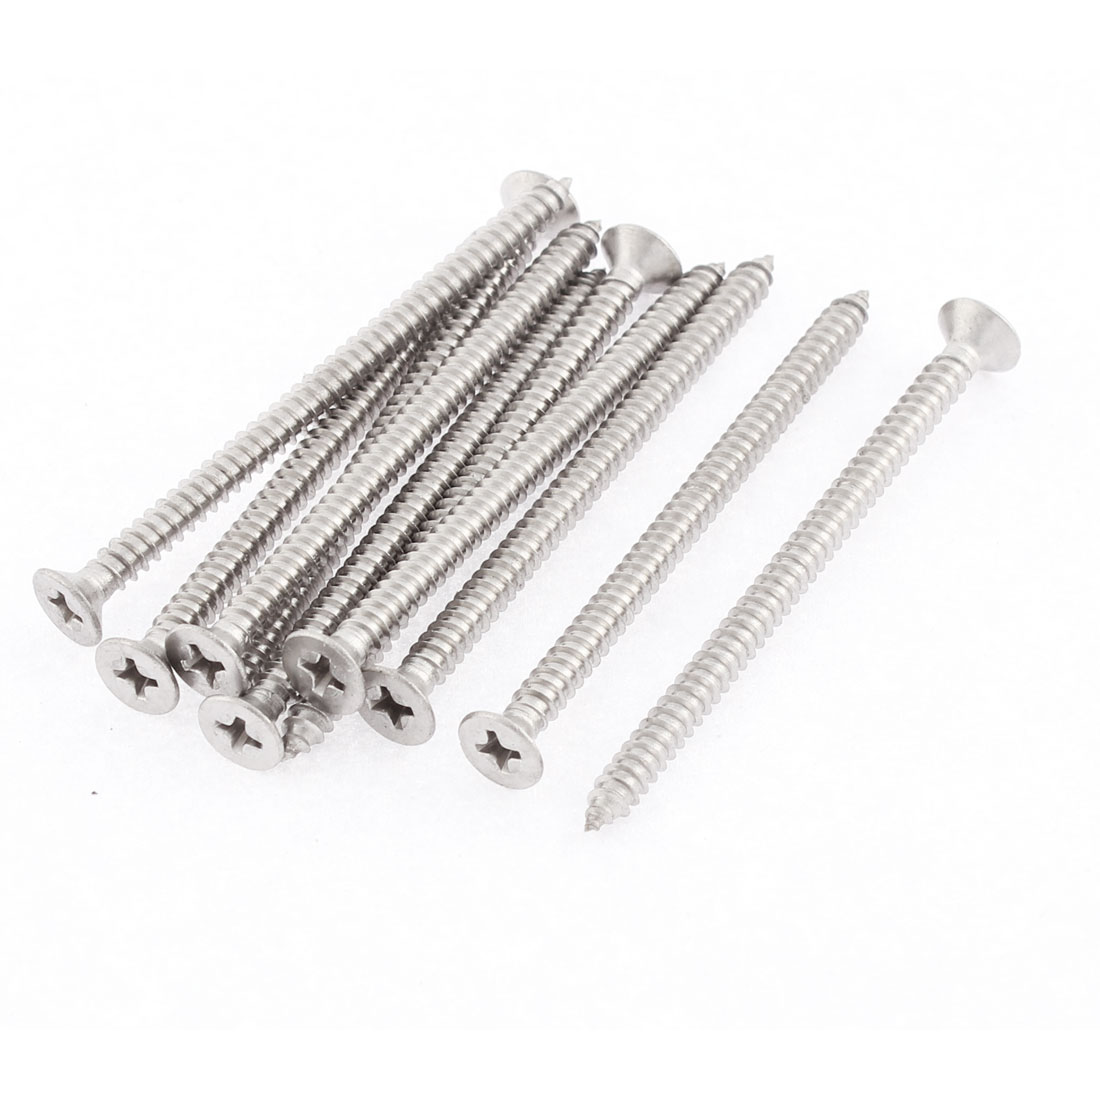 10 Pcs 4.2mmx65mm Stainless Steel Phillips Flat Head Sheet Self Tapping Screws